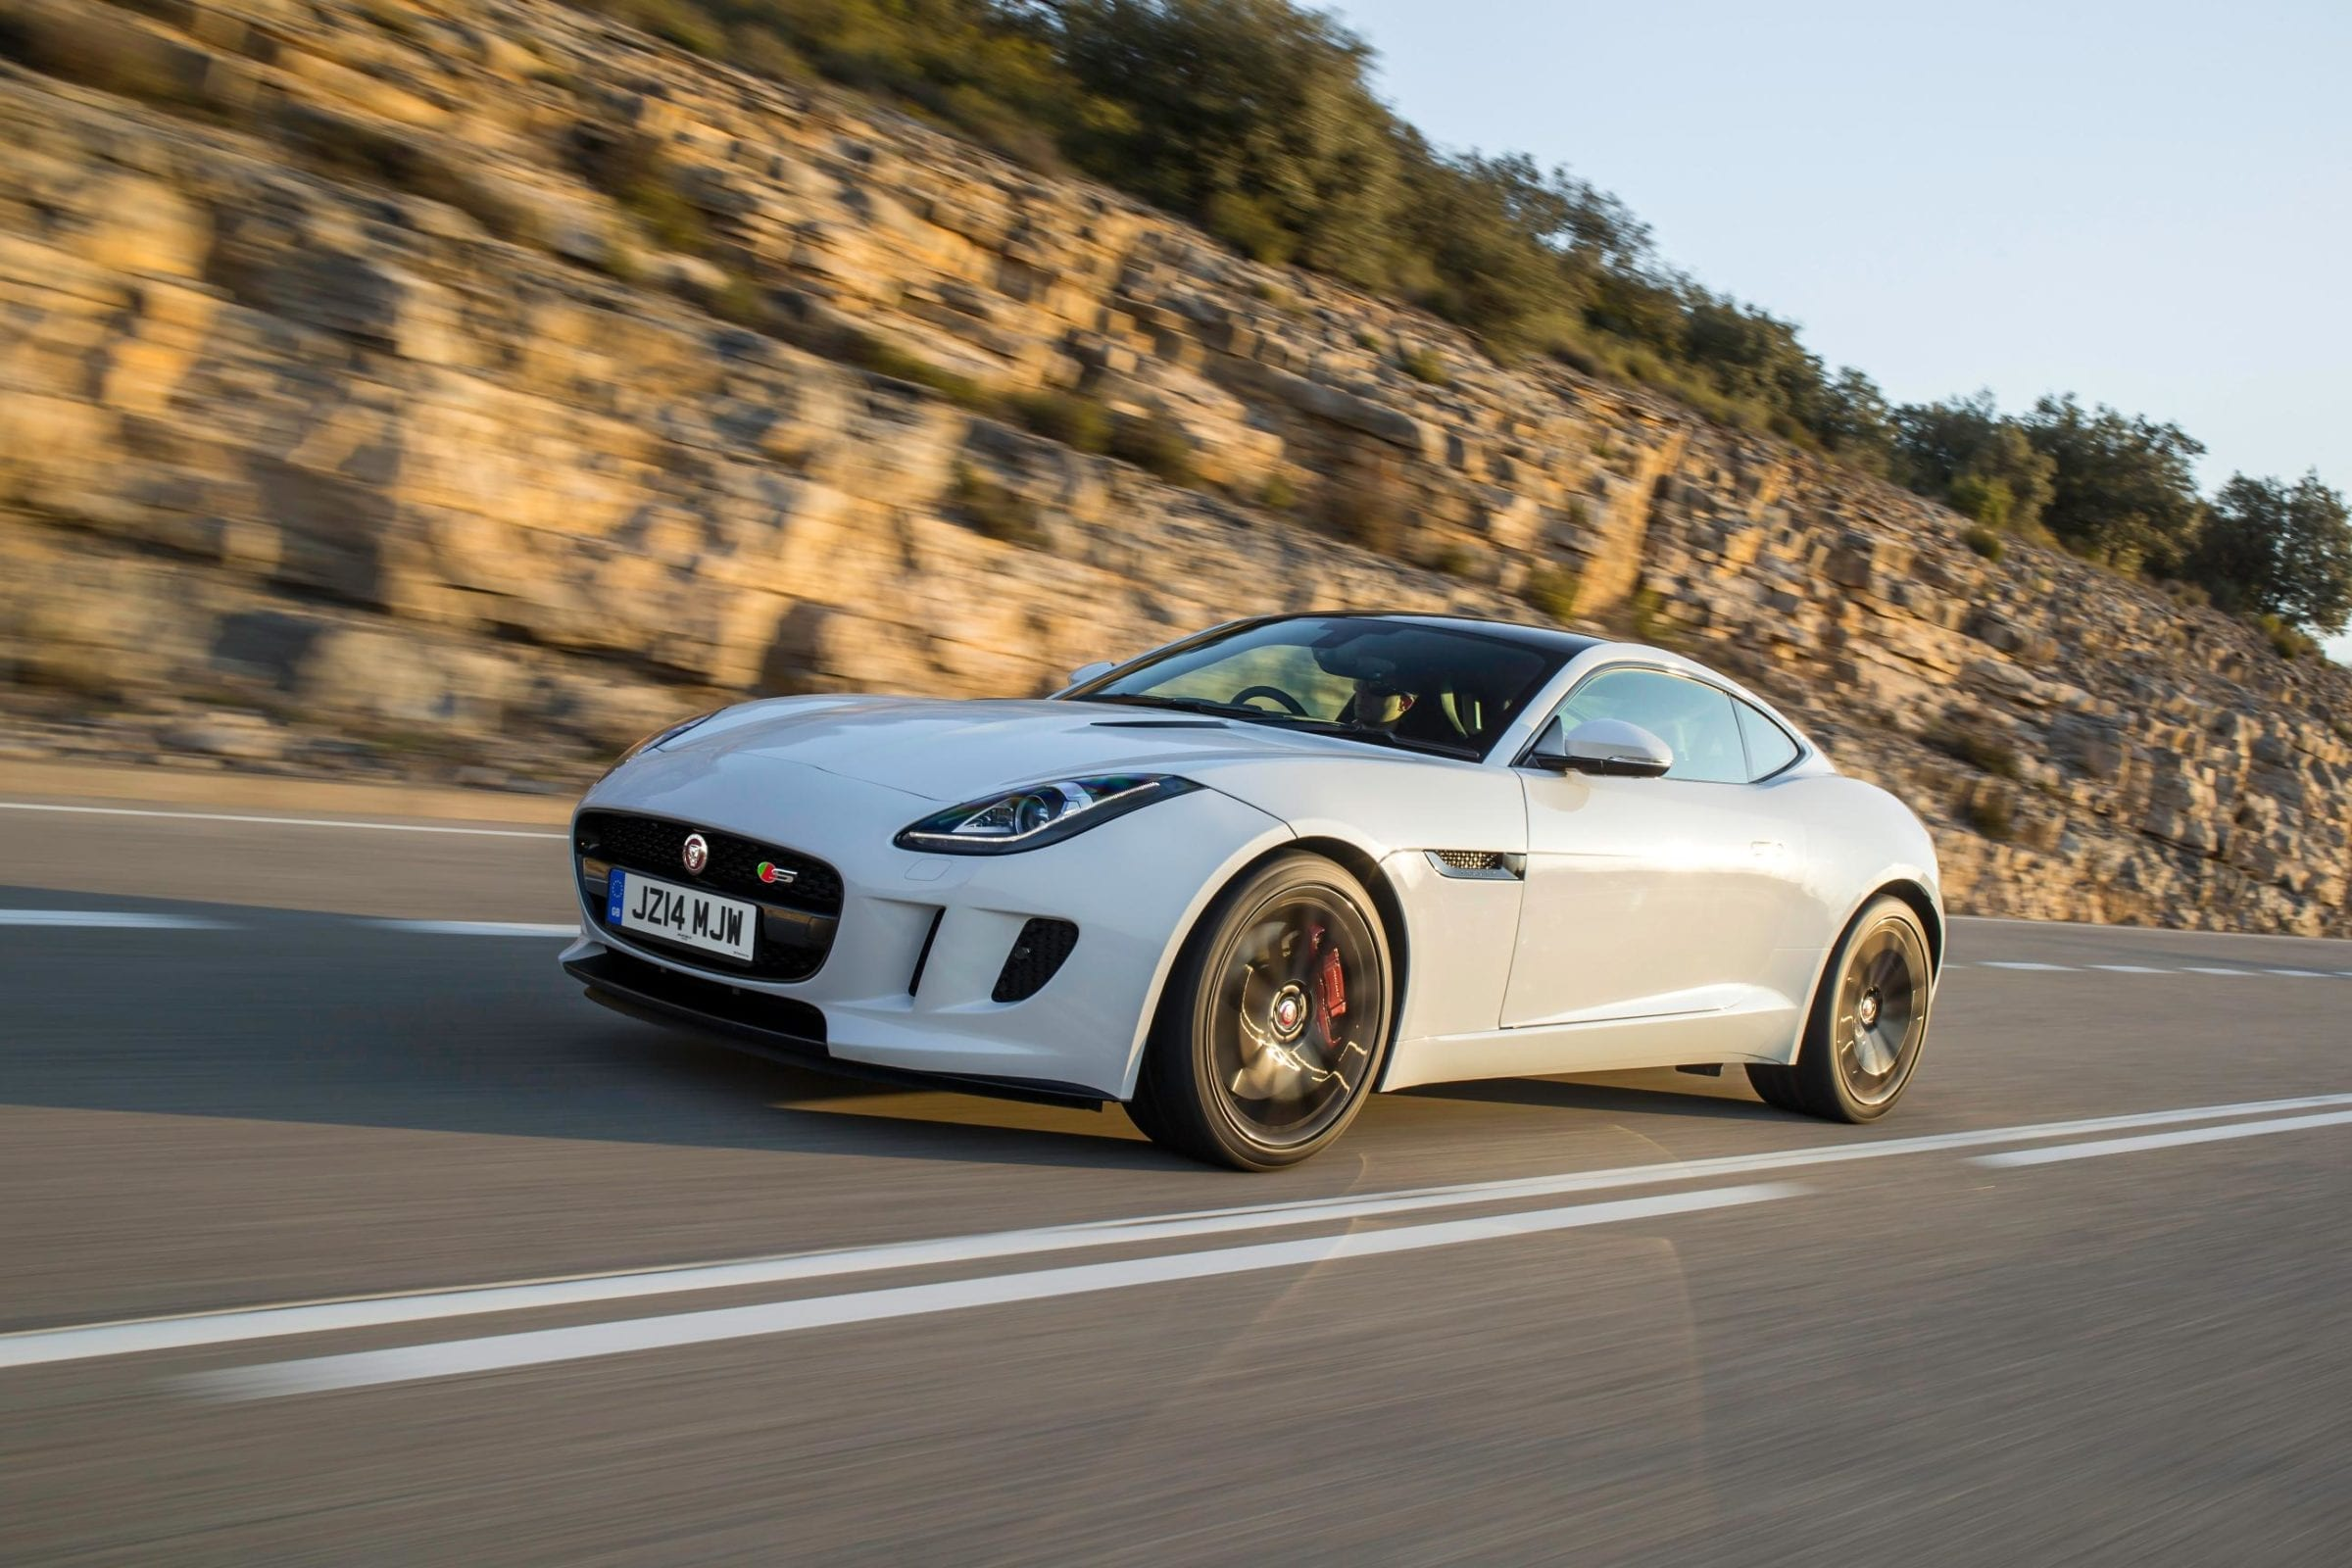 834001_JAG_F-TYPE_V6S_Polaris_White_002